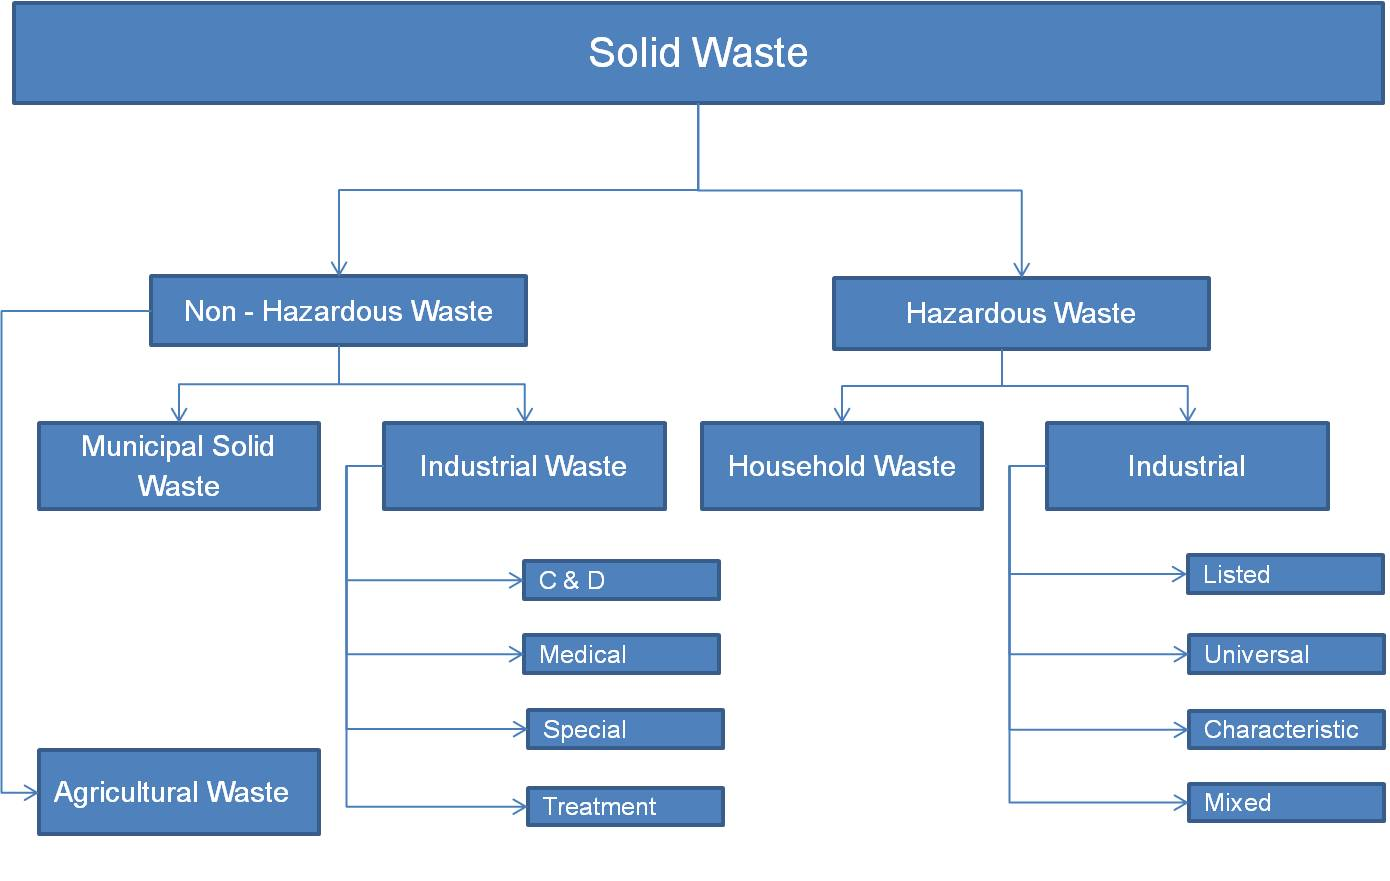 Powerpoint Organizational Chart Template: Solid Waste Types.jpg - Wikipedia,Chart